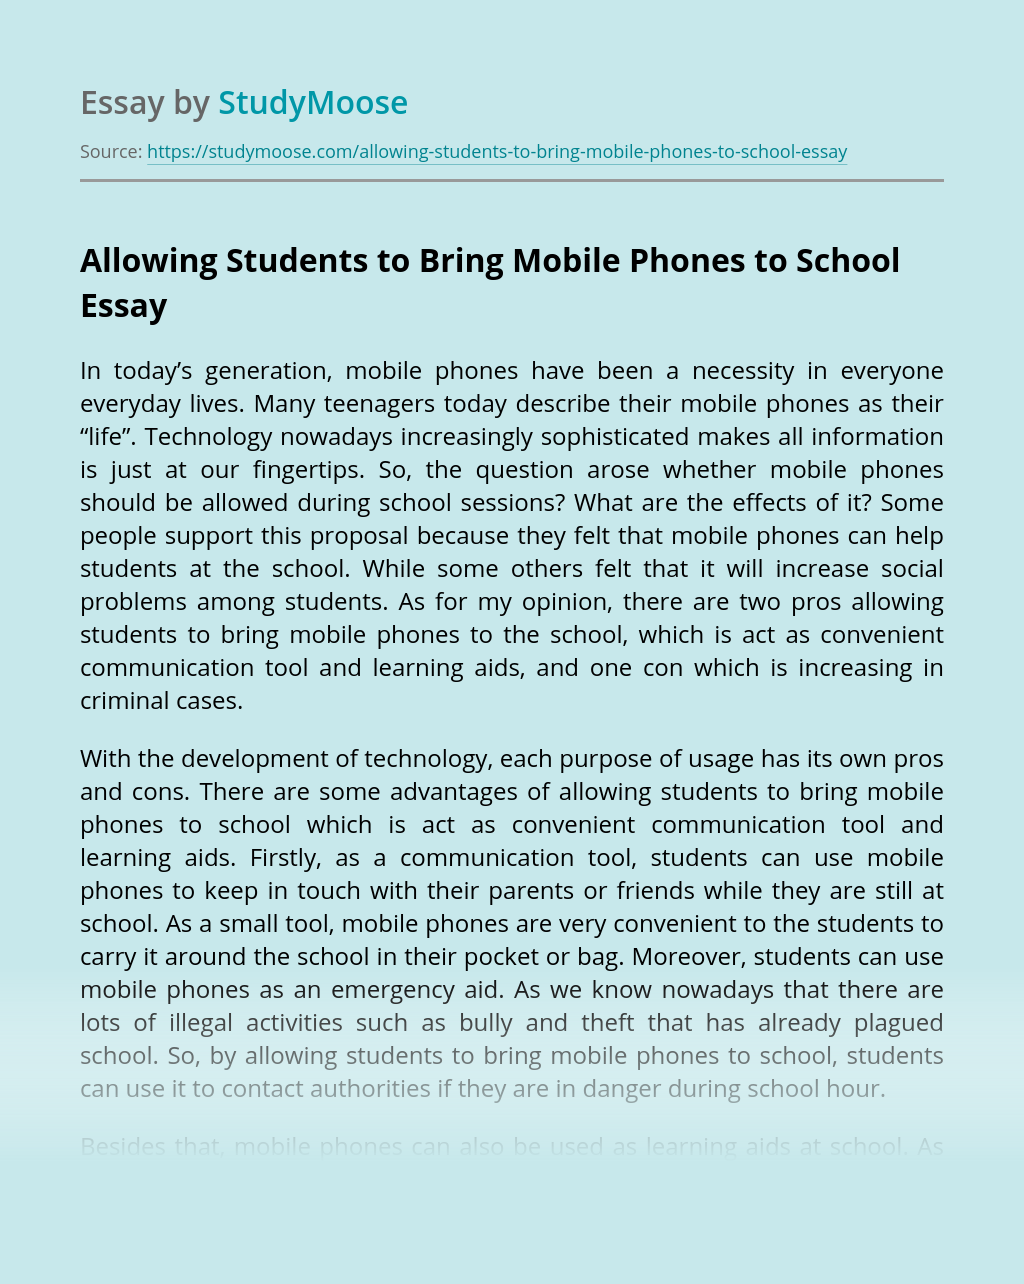 Allowing Students to Bring Mobile Phones to School